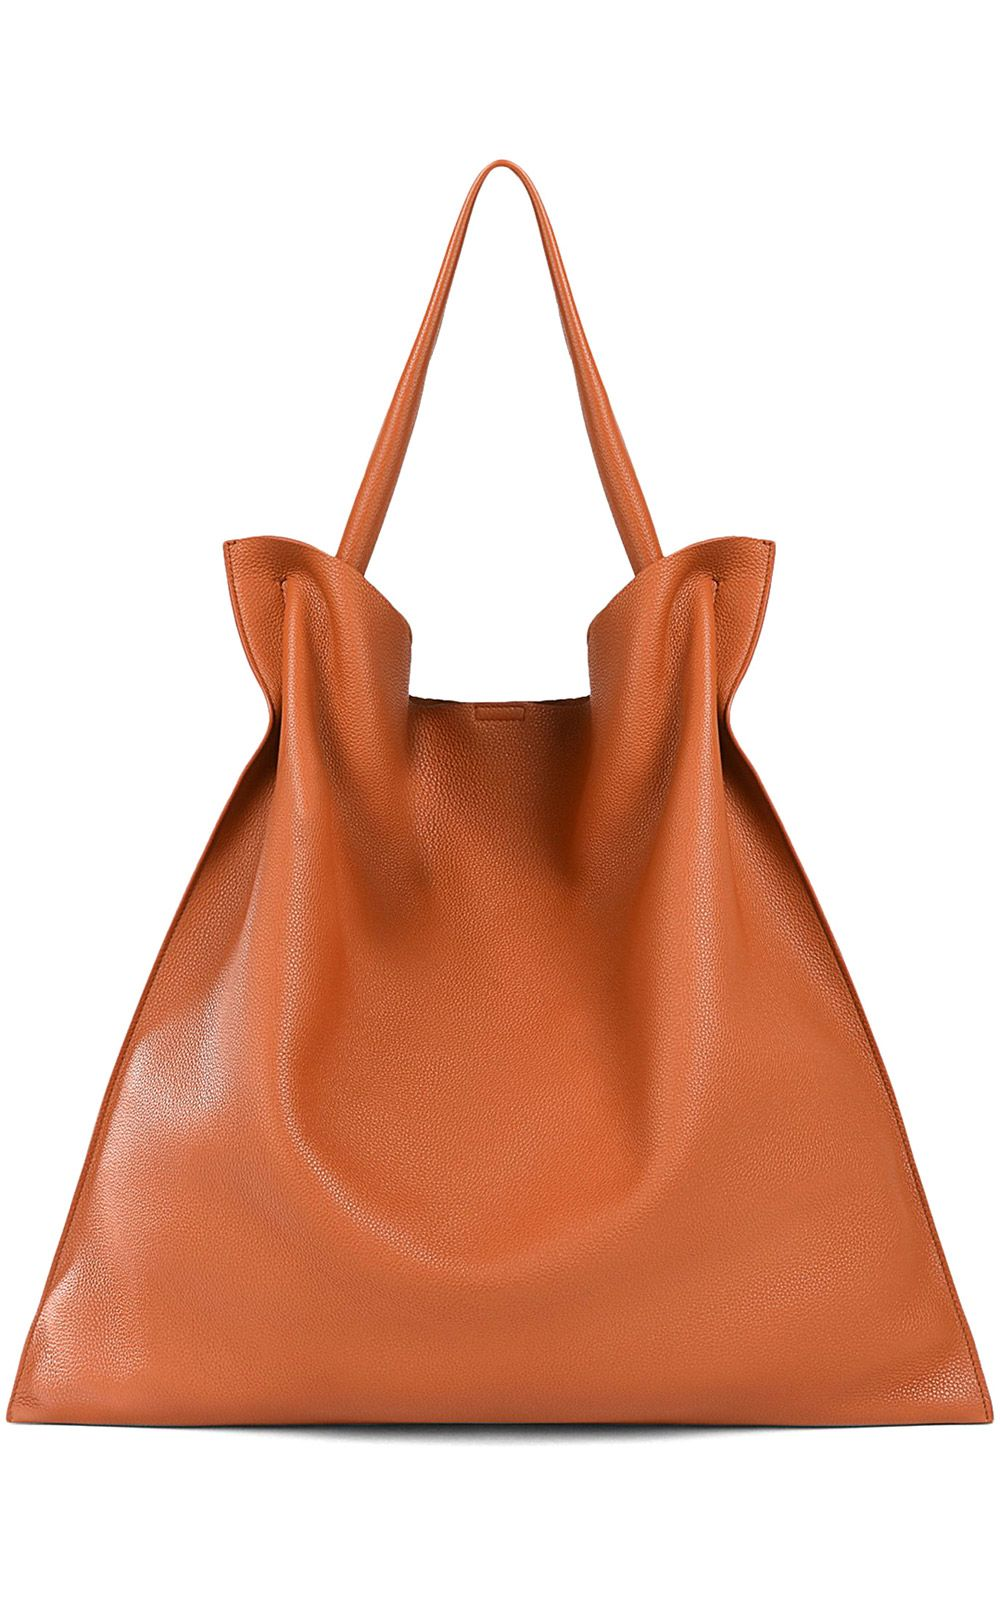 cadd04078eb21 Jil Sander - Jil Sander Xiao Md Grained-leather Tote - Cuoio ...